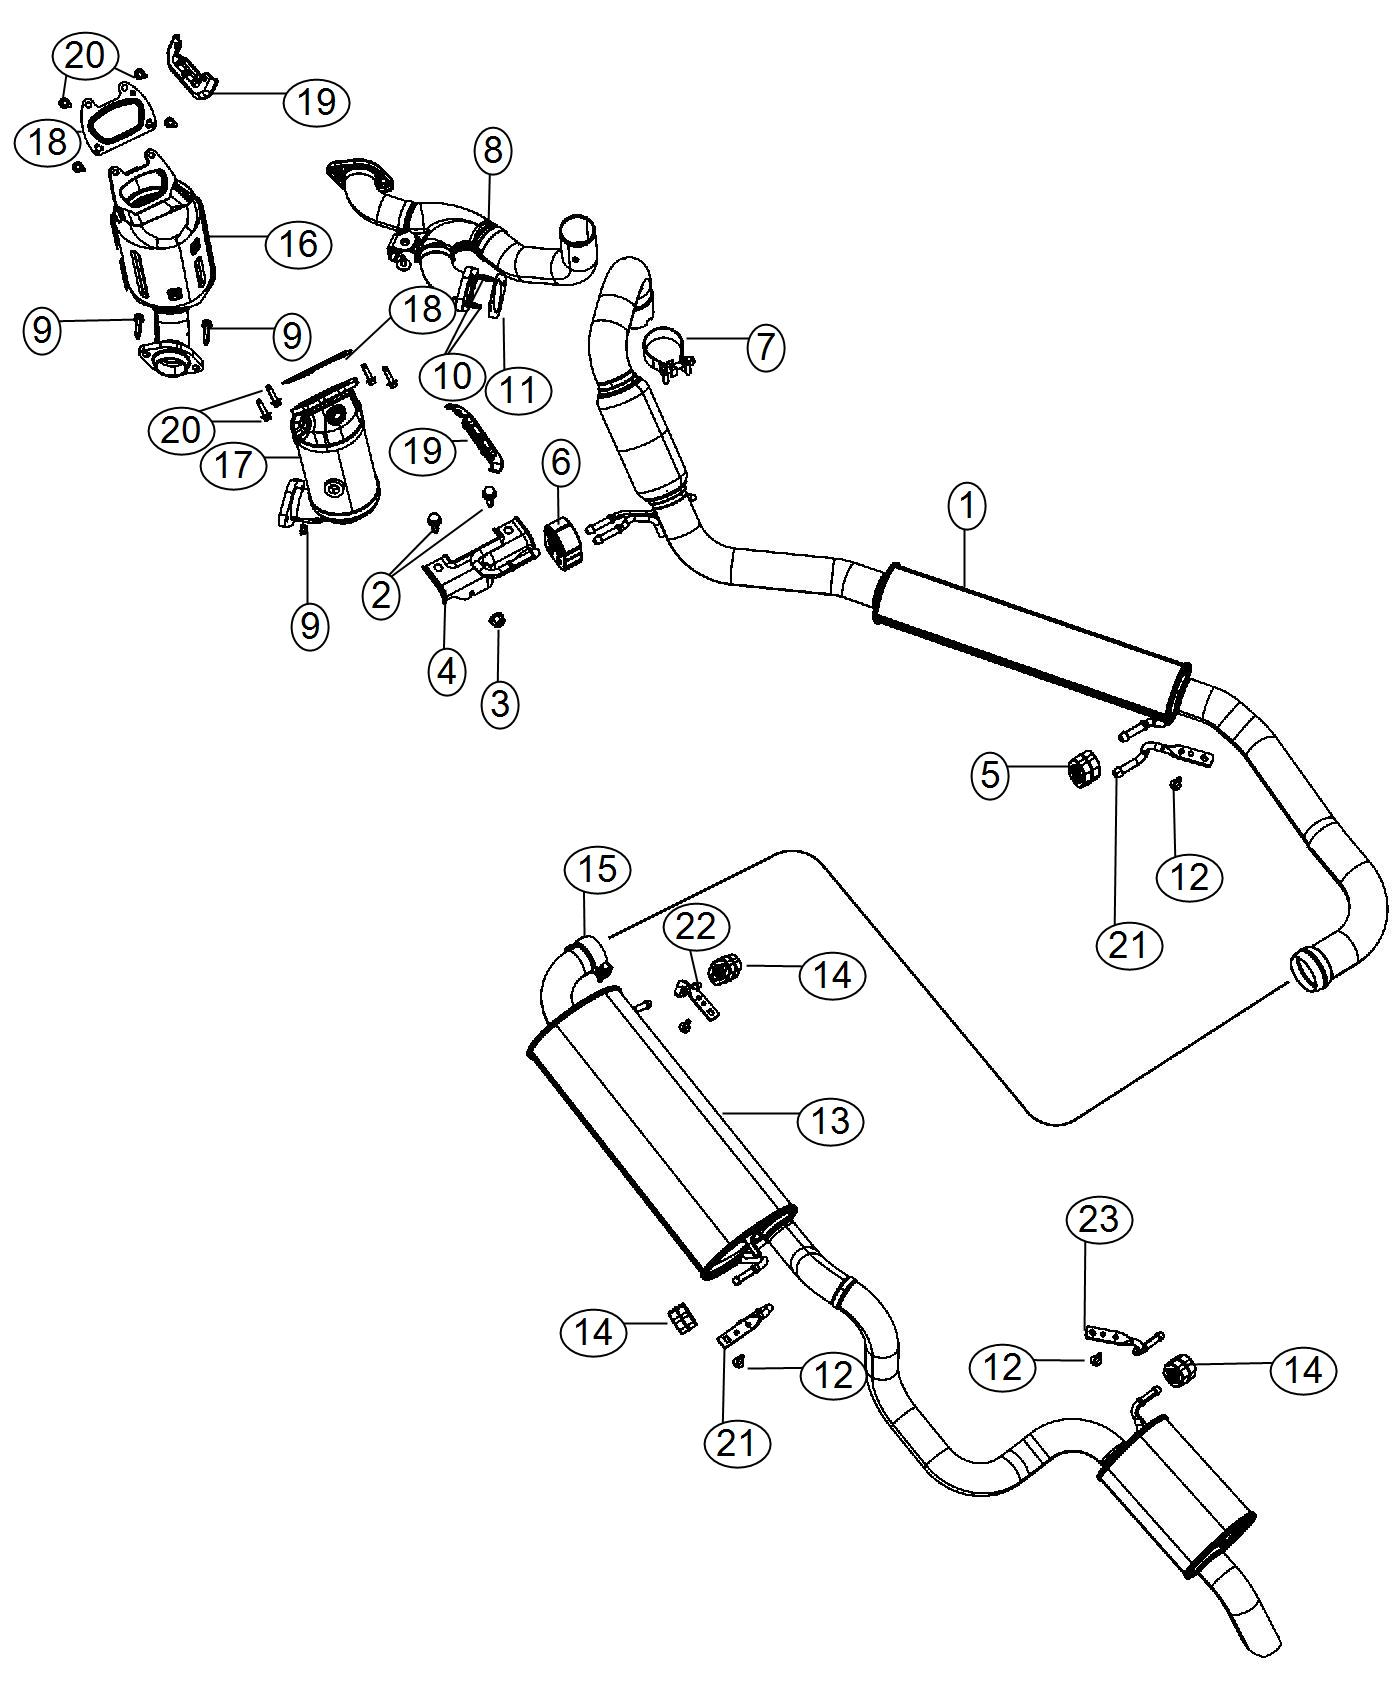 Wiring Diagram For 2000 Chrysler Town And Country Diagram